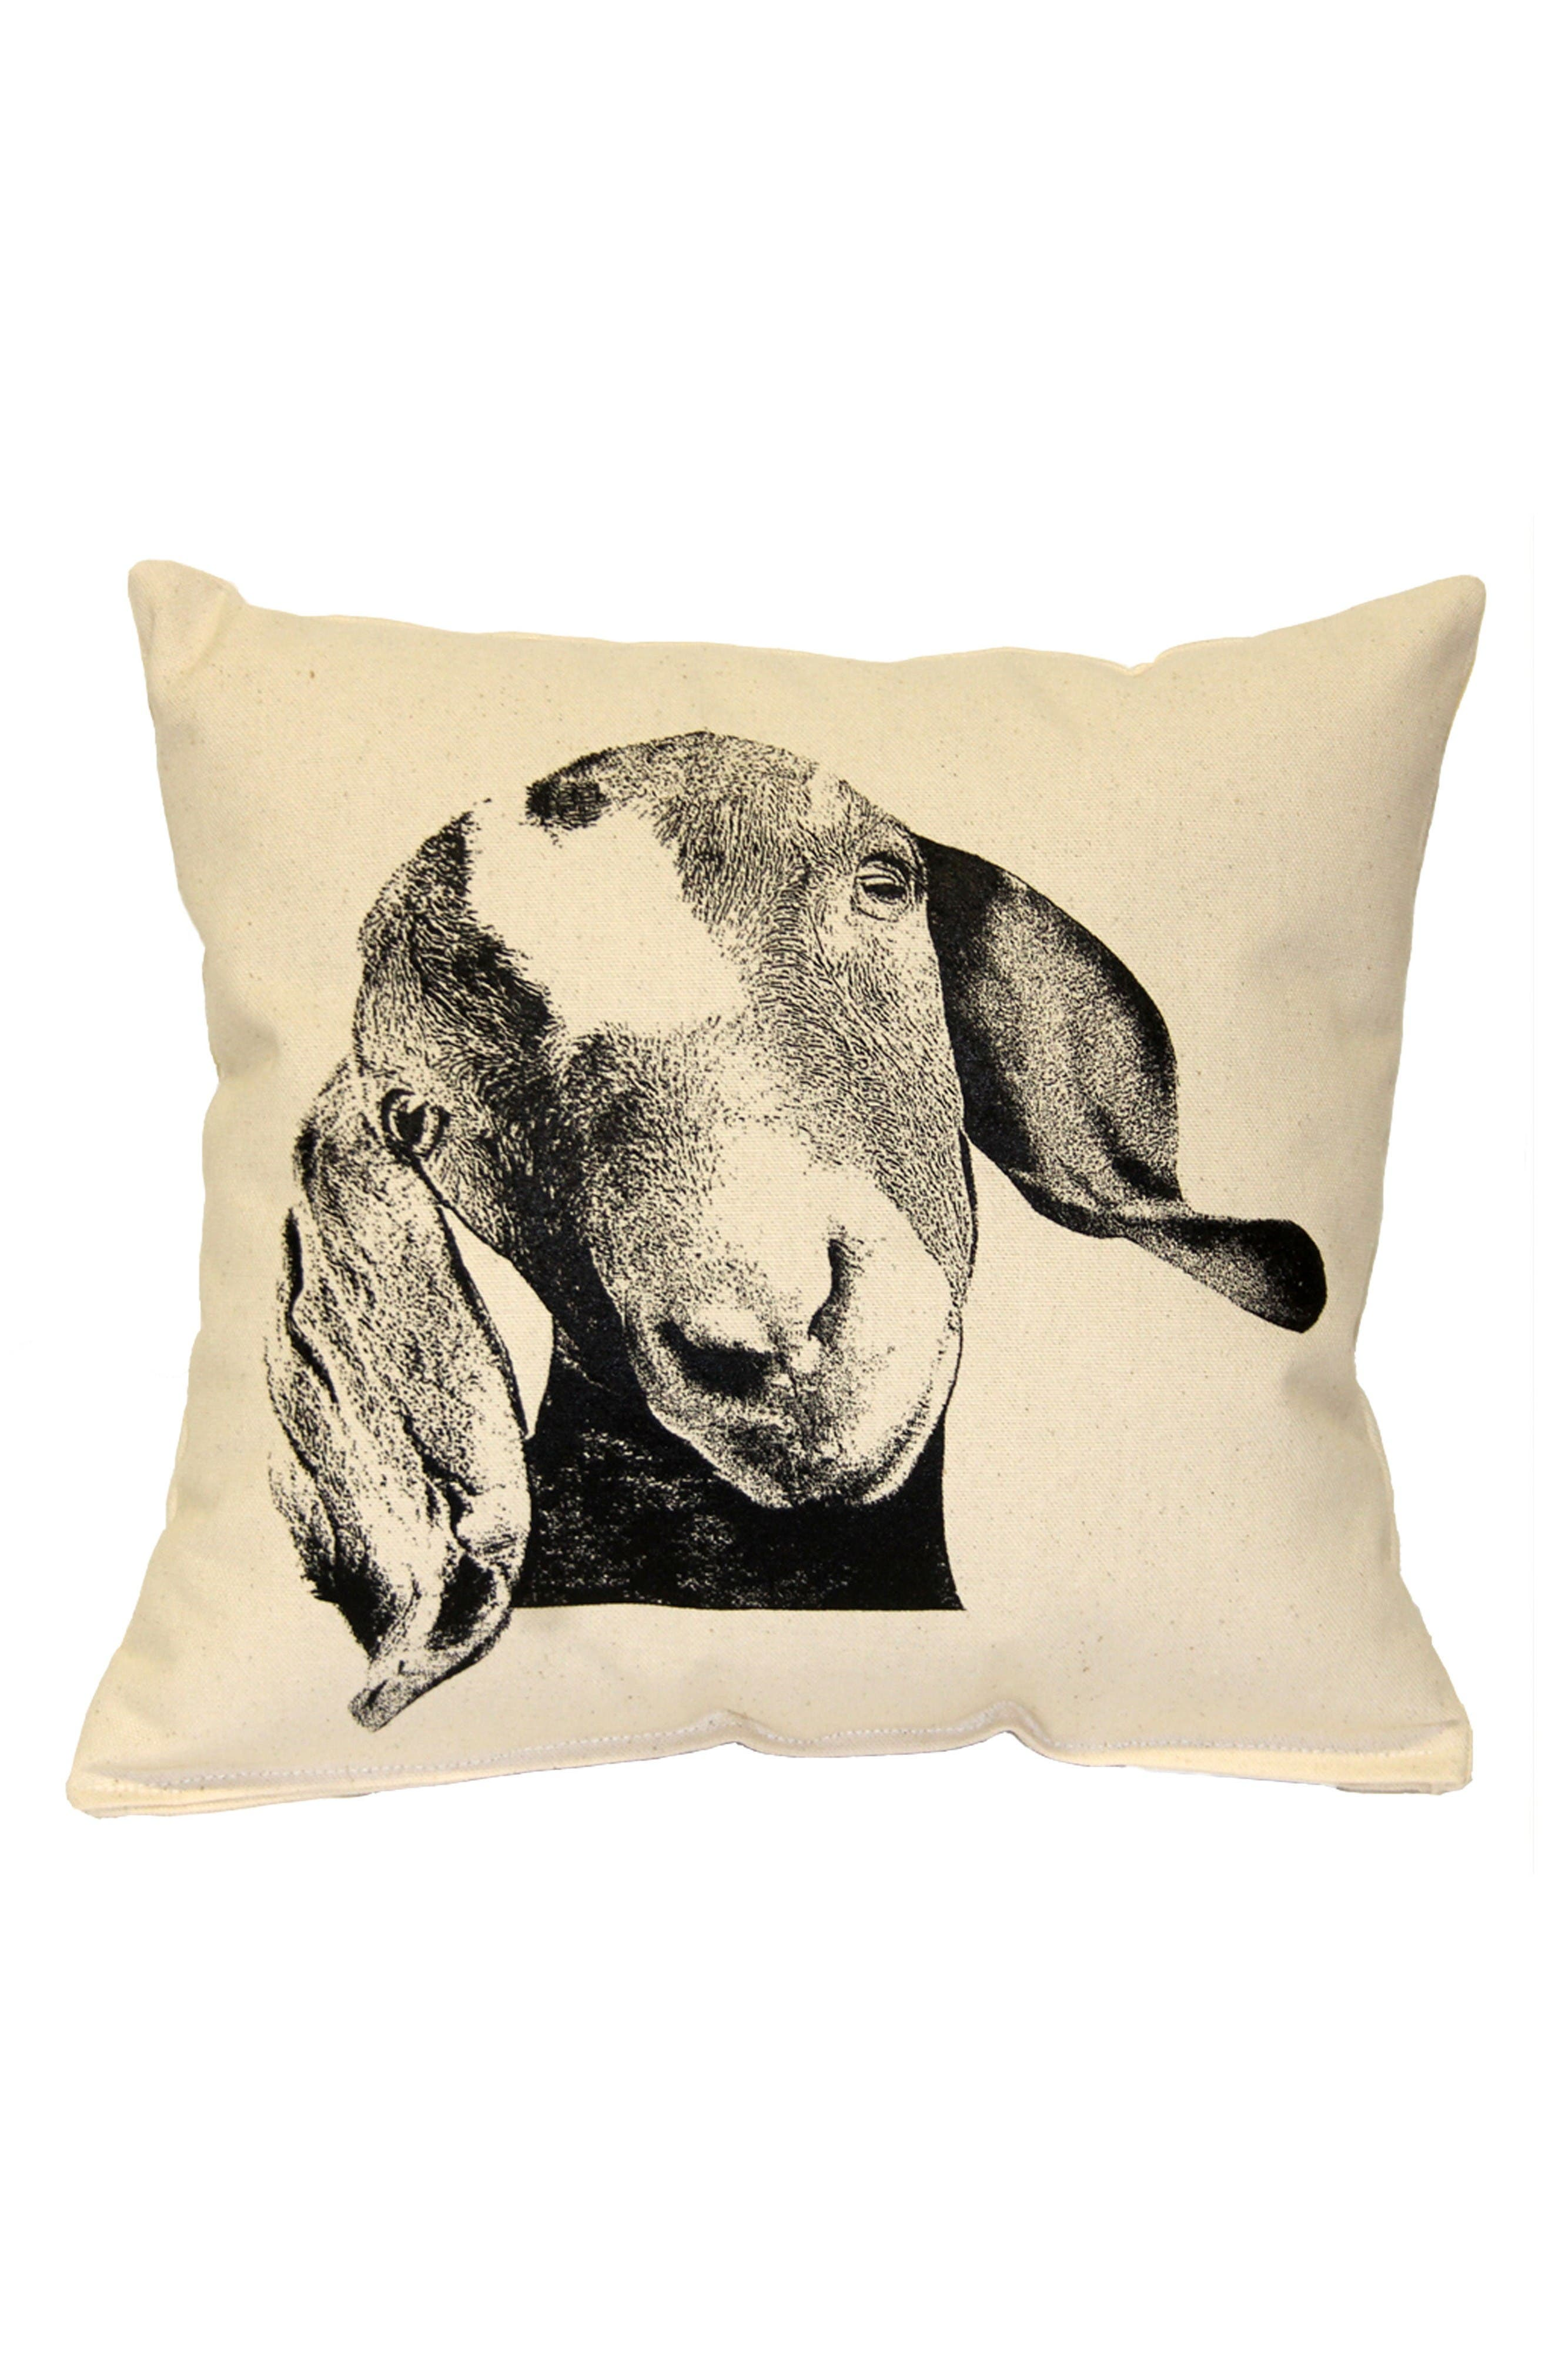 Animal Accent Pillow,                         Main,                         color, Goat